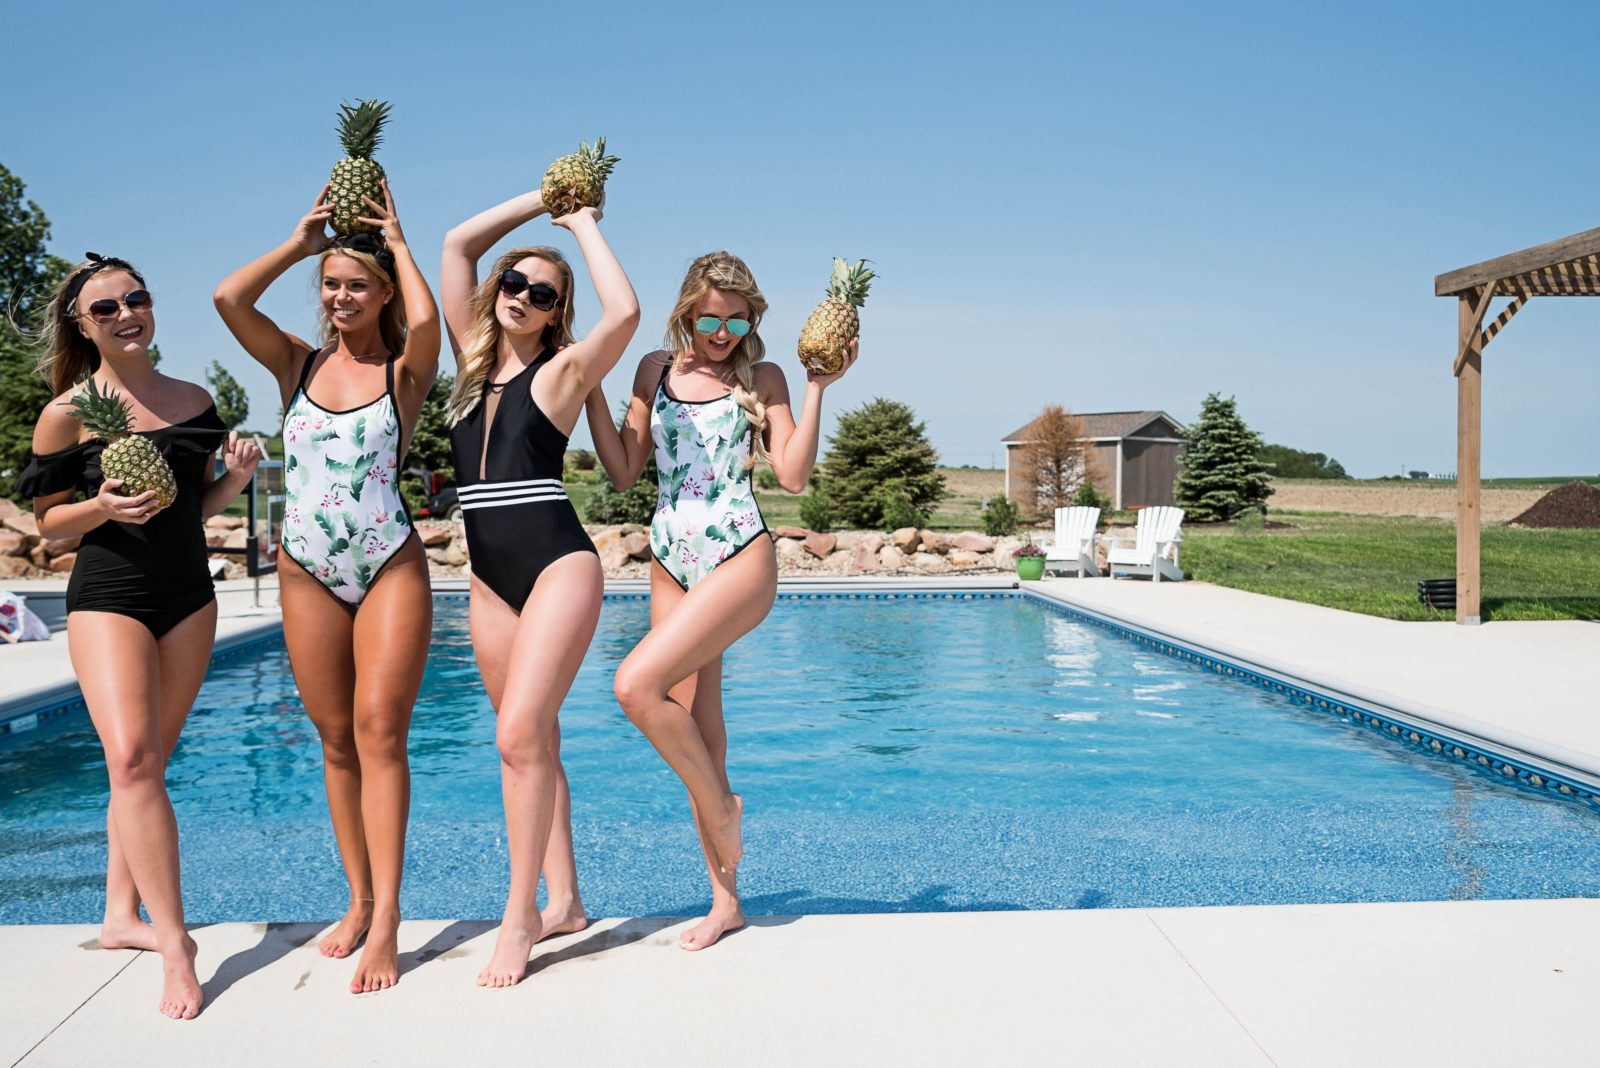 Pool and Beach Tips: What to Know Before You Go recommend